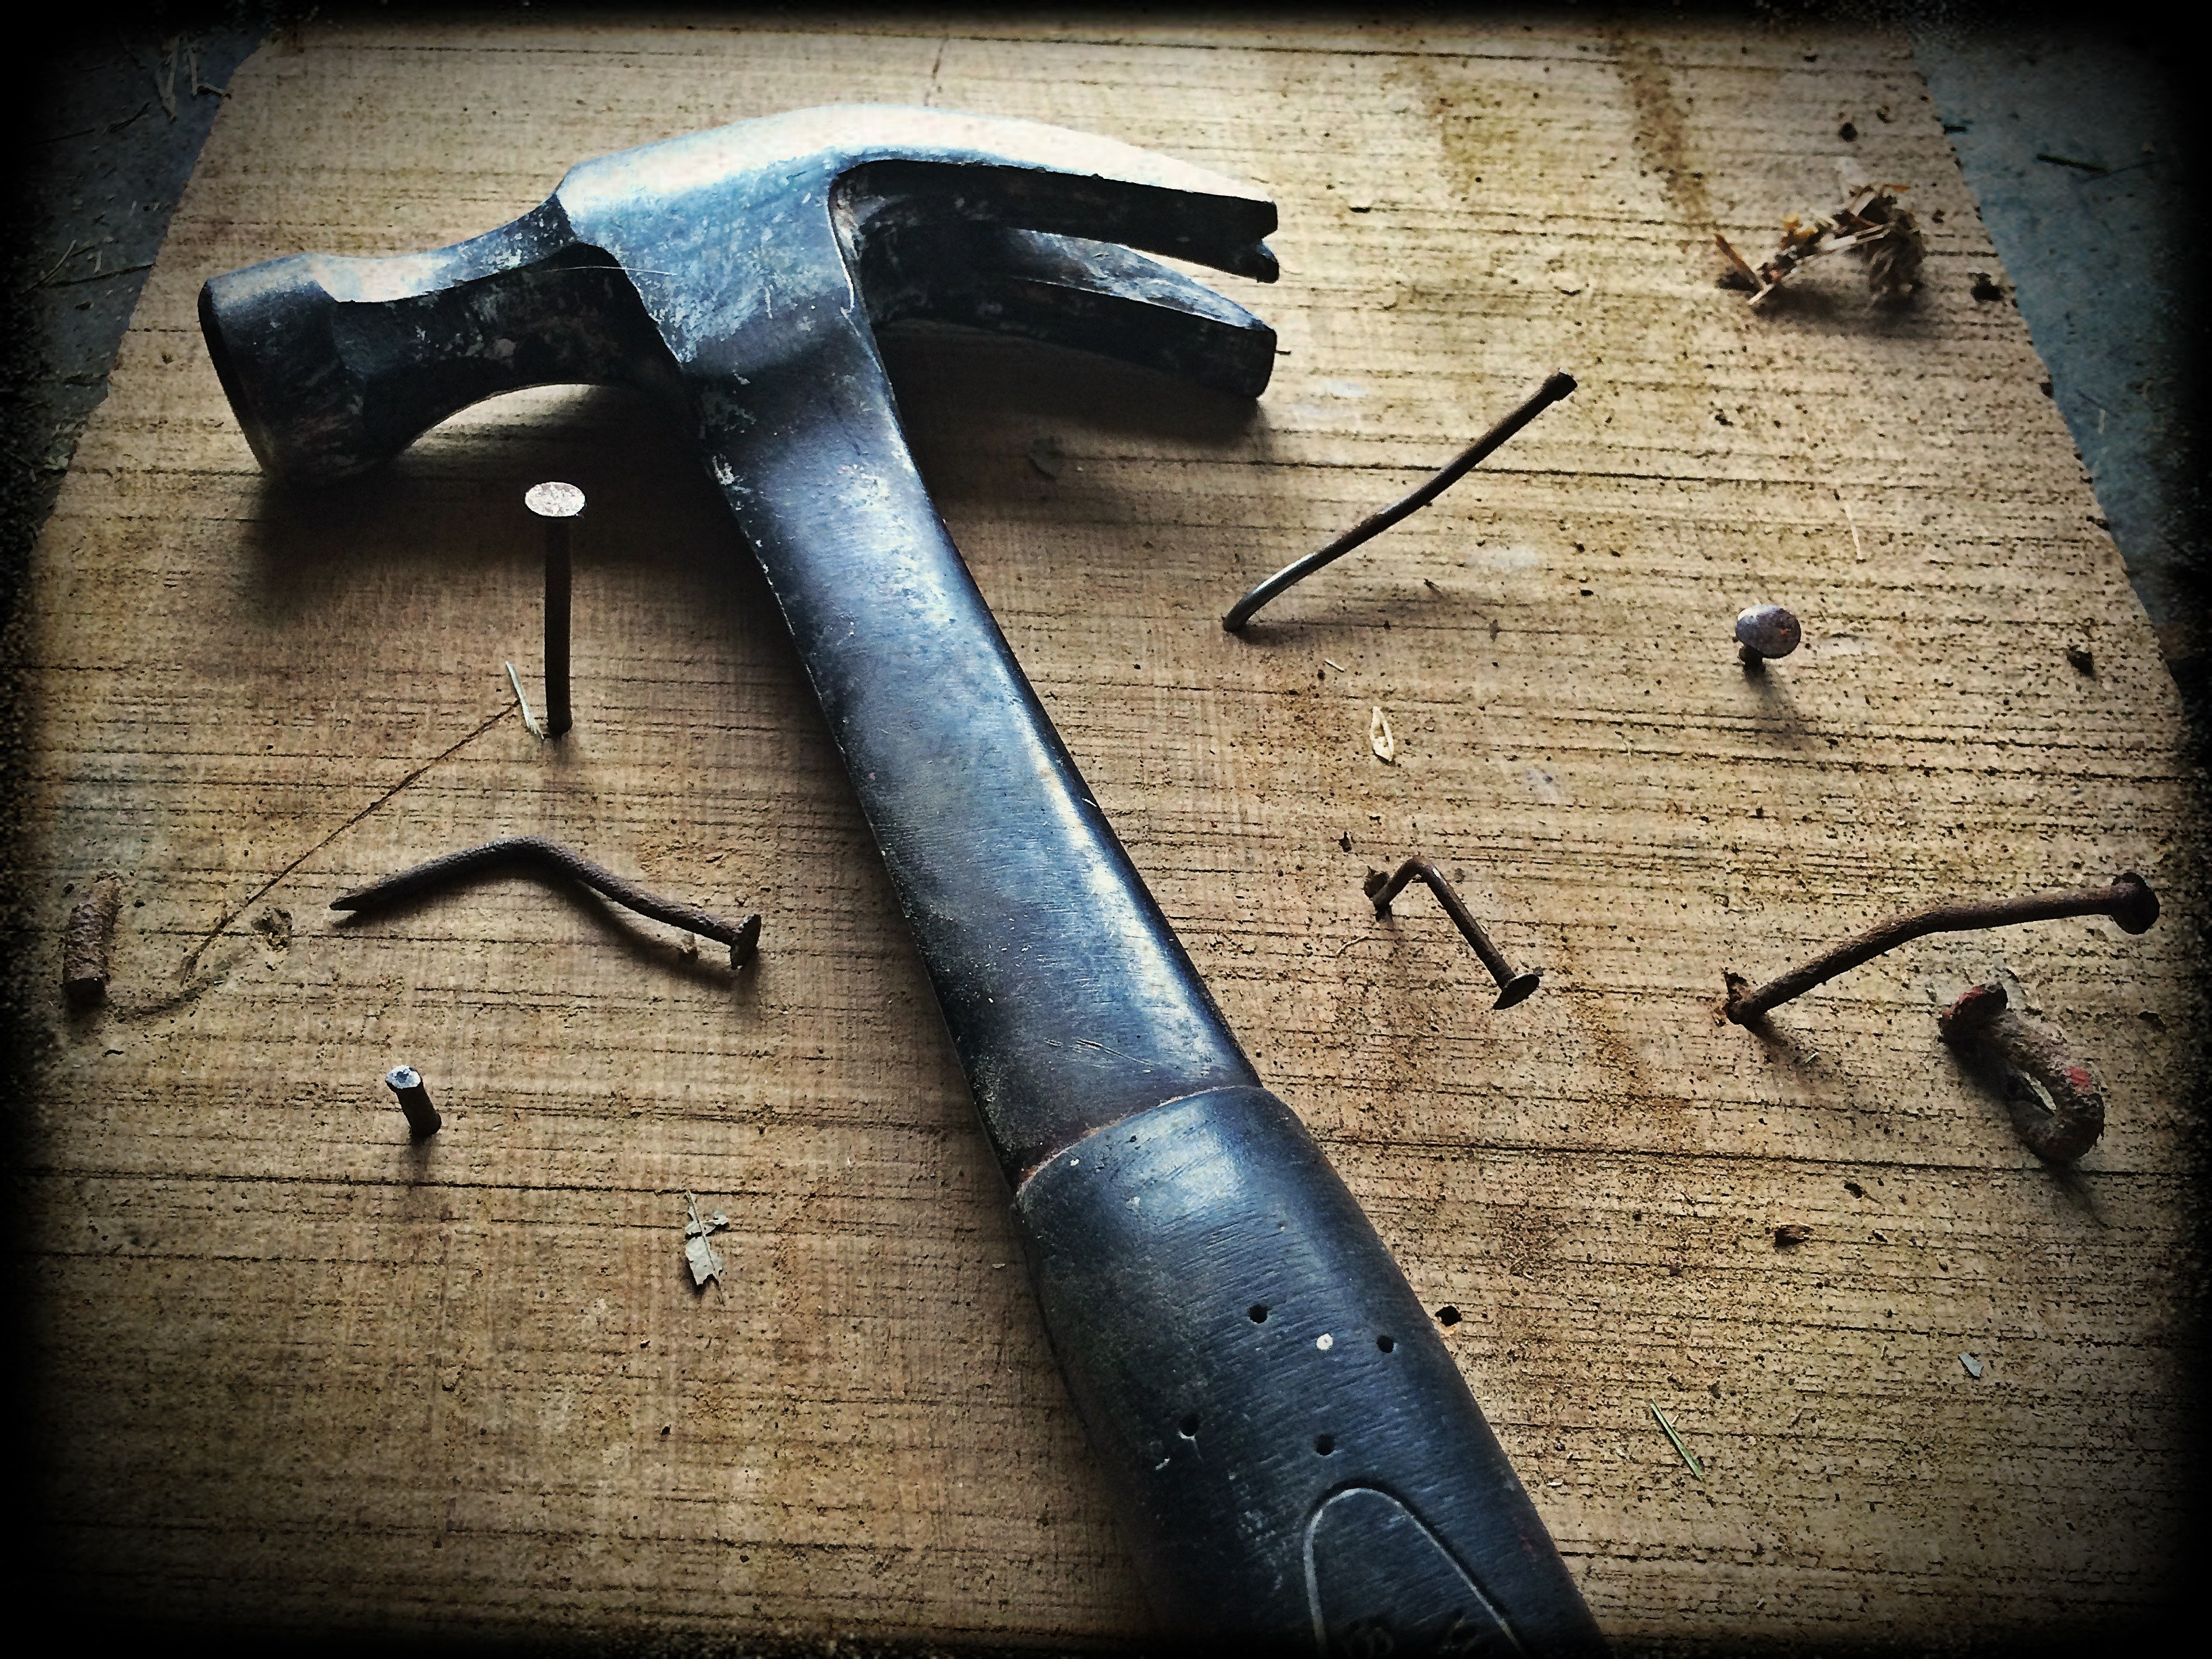 Black Claw Hammer on Brown Wooden Plank, Tool, Tools, Timber, Still life, HQ Photo